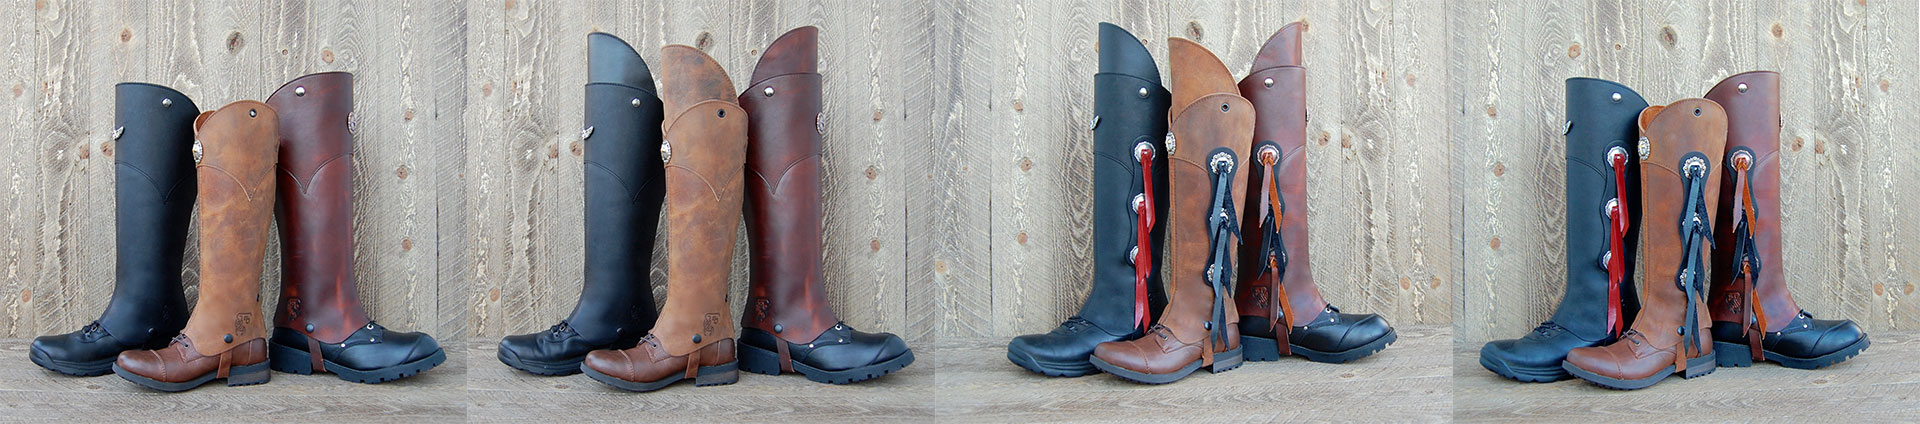 same half chaps with different accessories